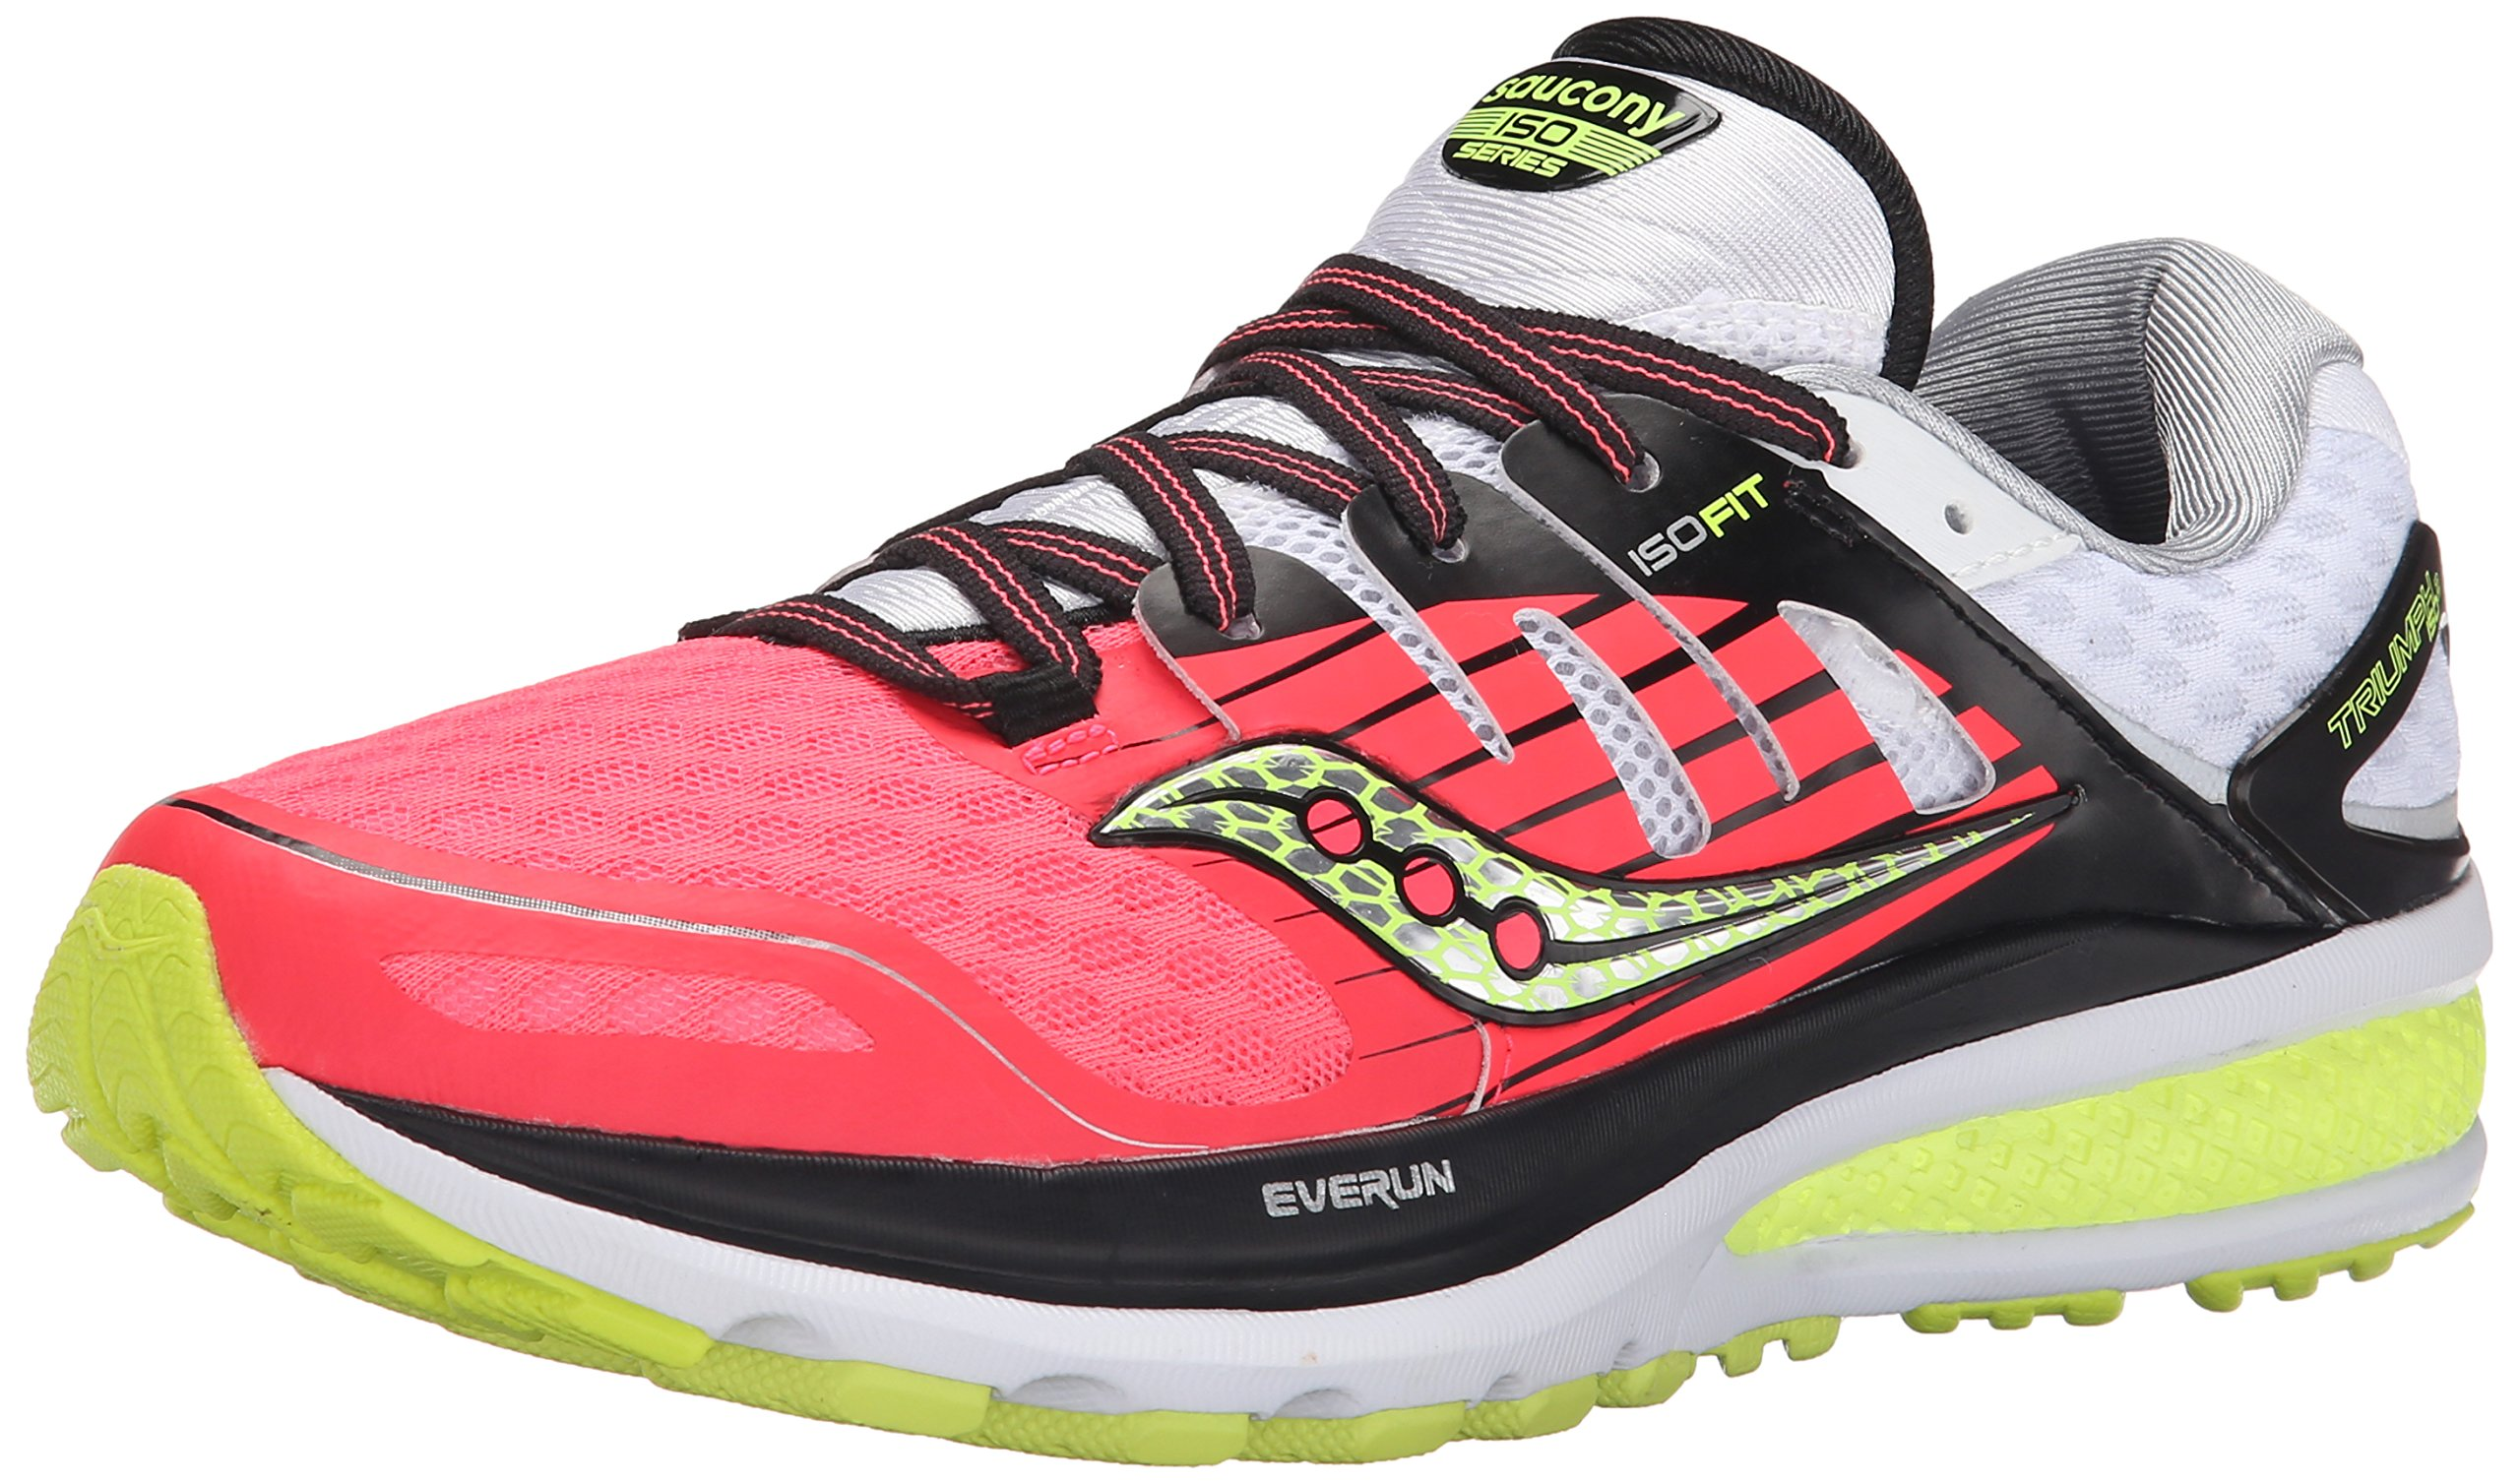 Saucony Women's Triumph ISO 2 Running Shoe, Coral/Silver, 9.5 M US